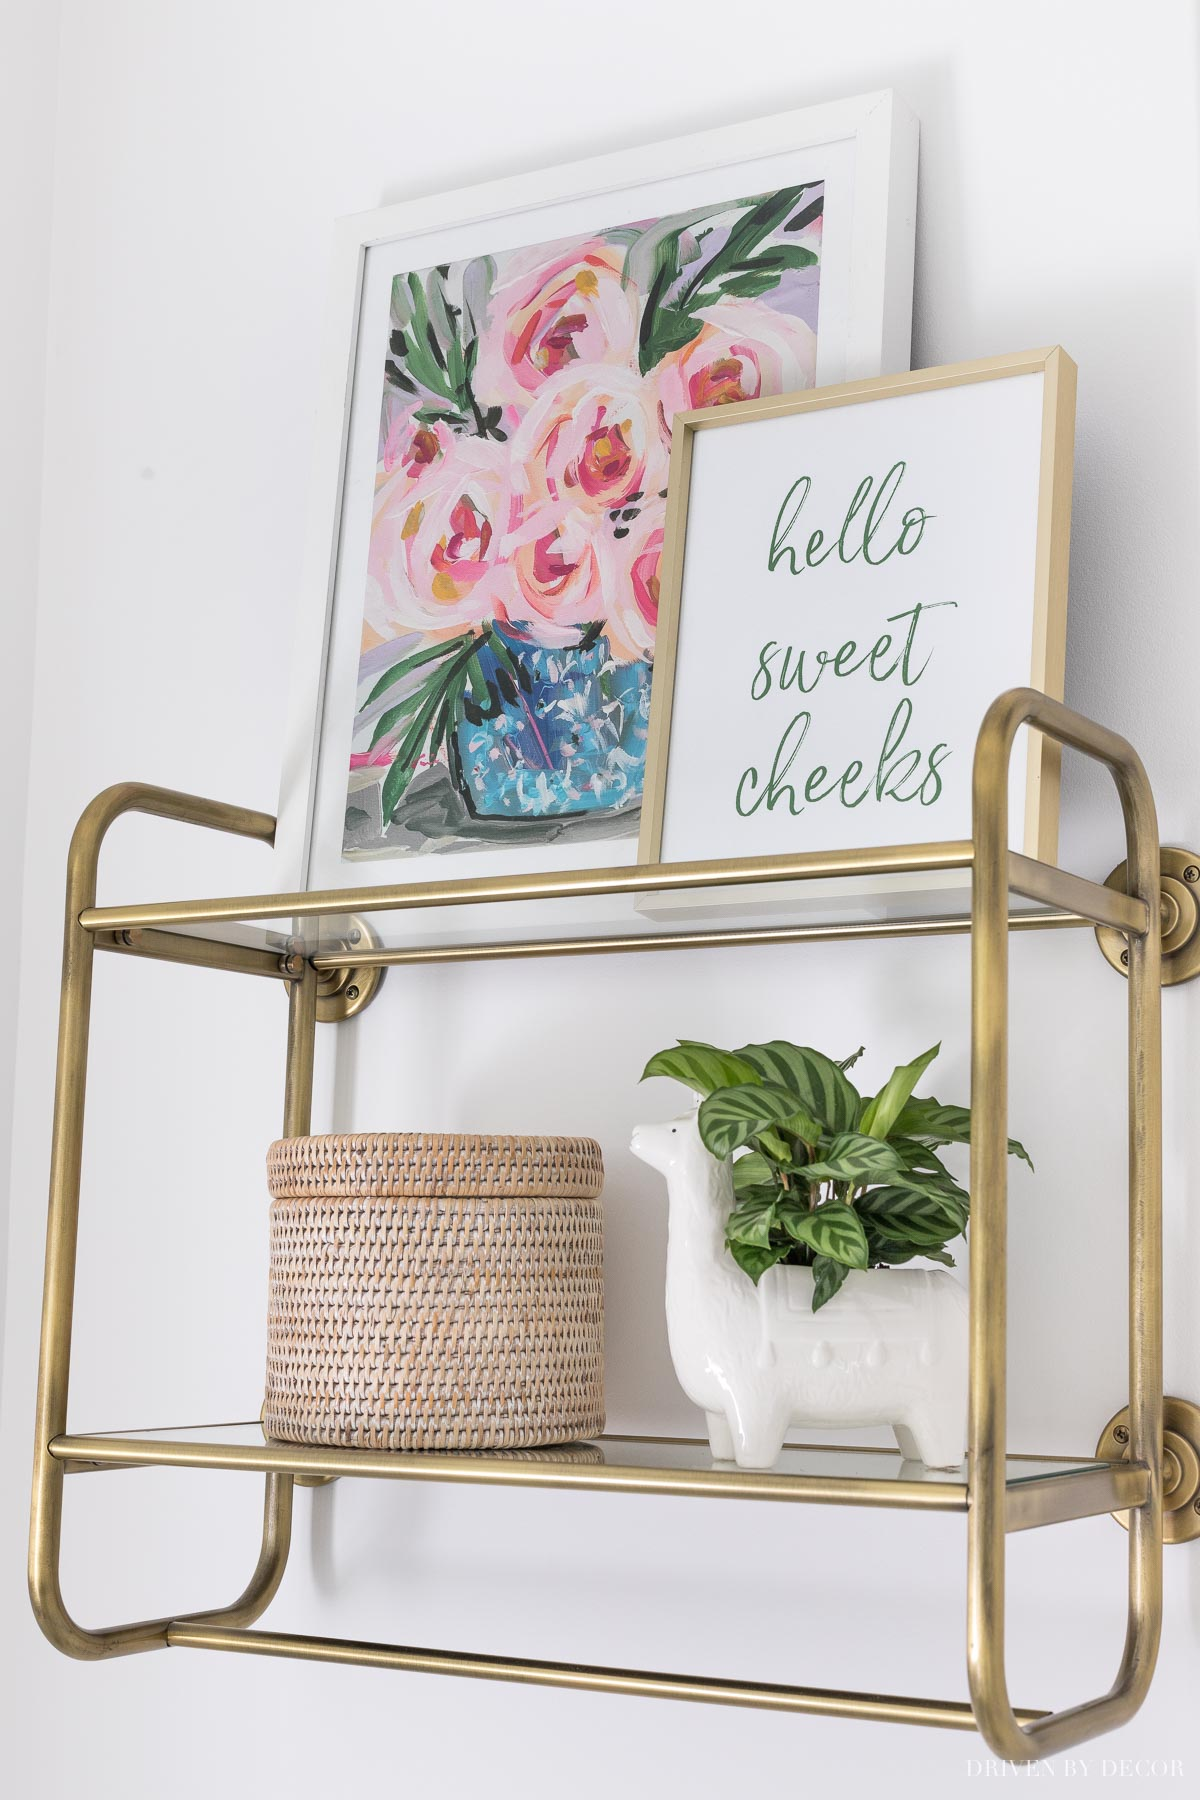 Love the idea of a wall shelf like this over the toilet in the master bathroom!